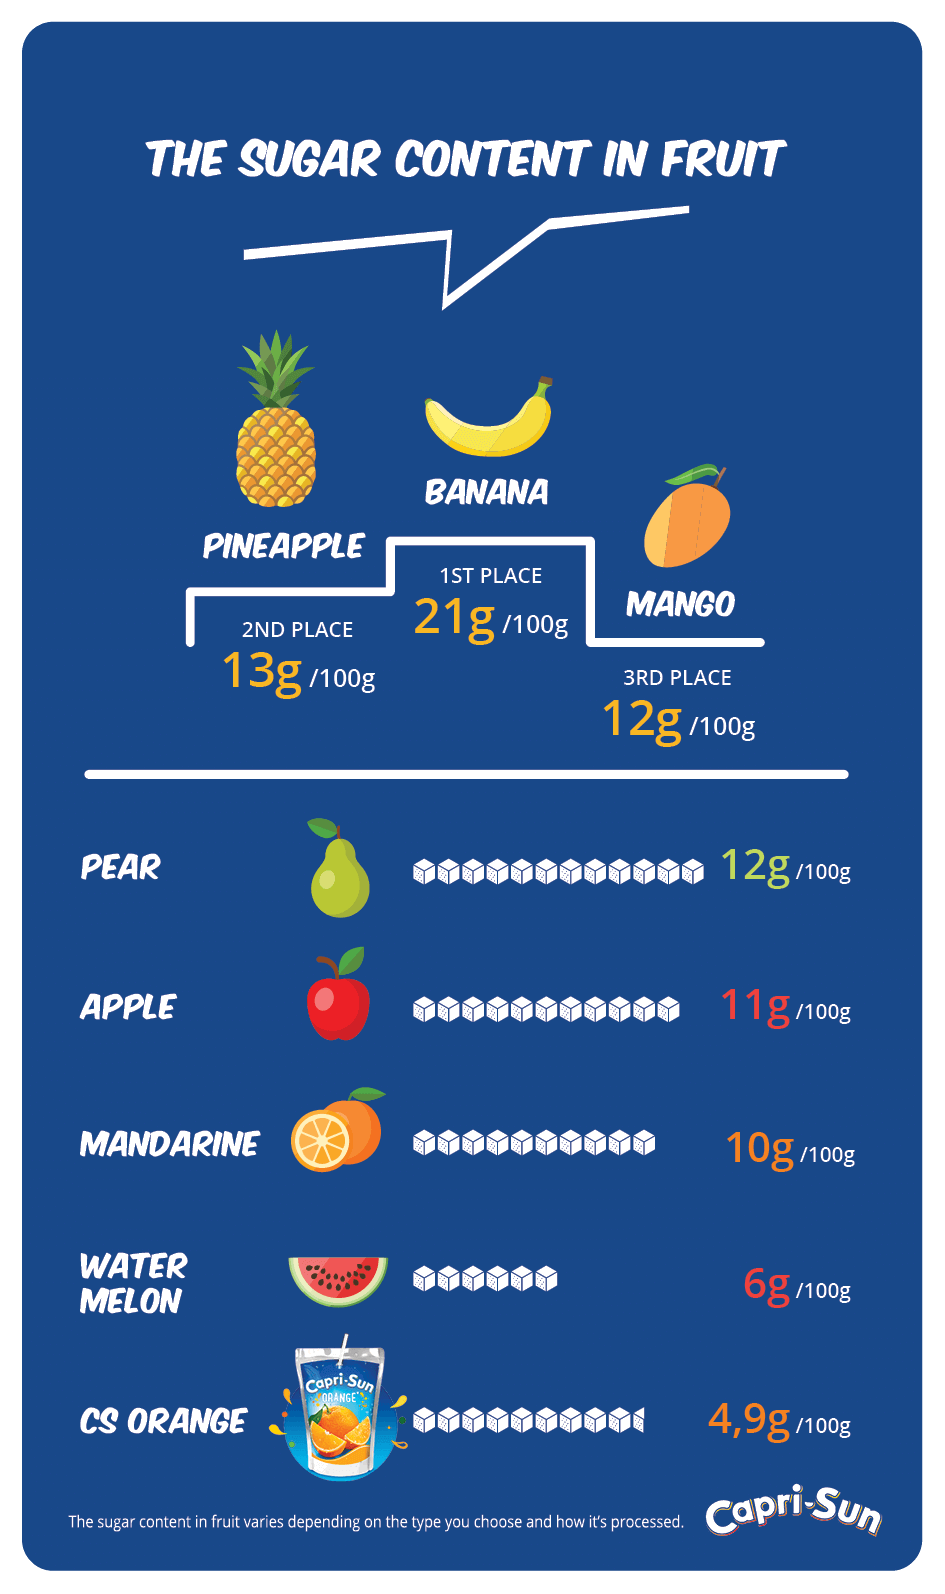 Overview of fruits and their sugar content compared to Capri-Sun.